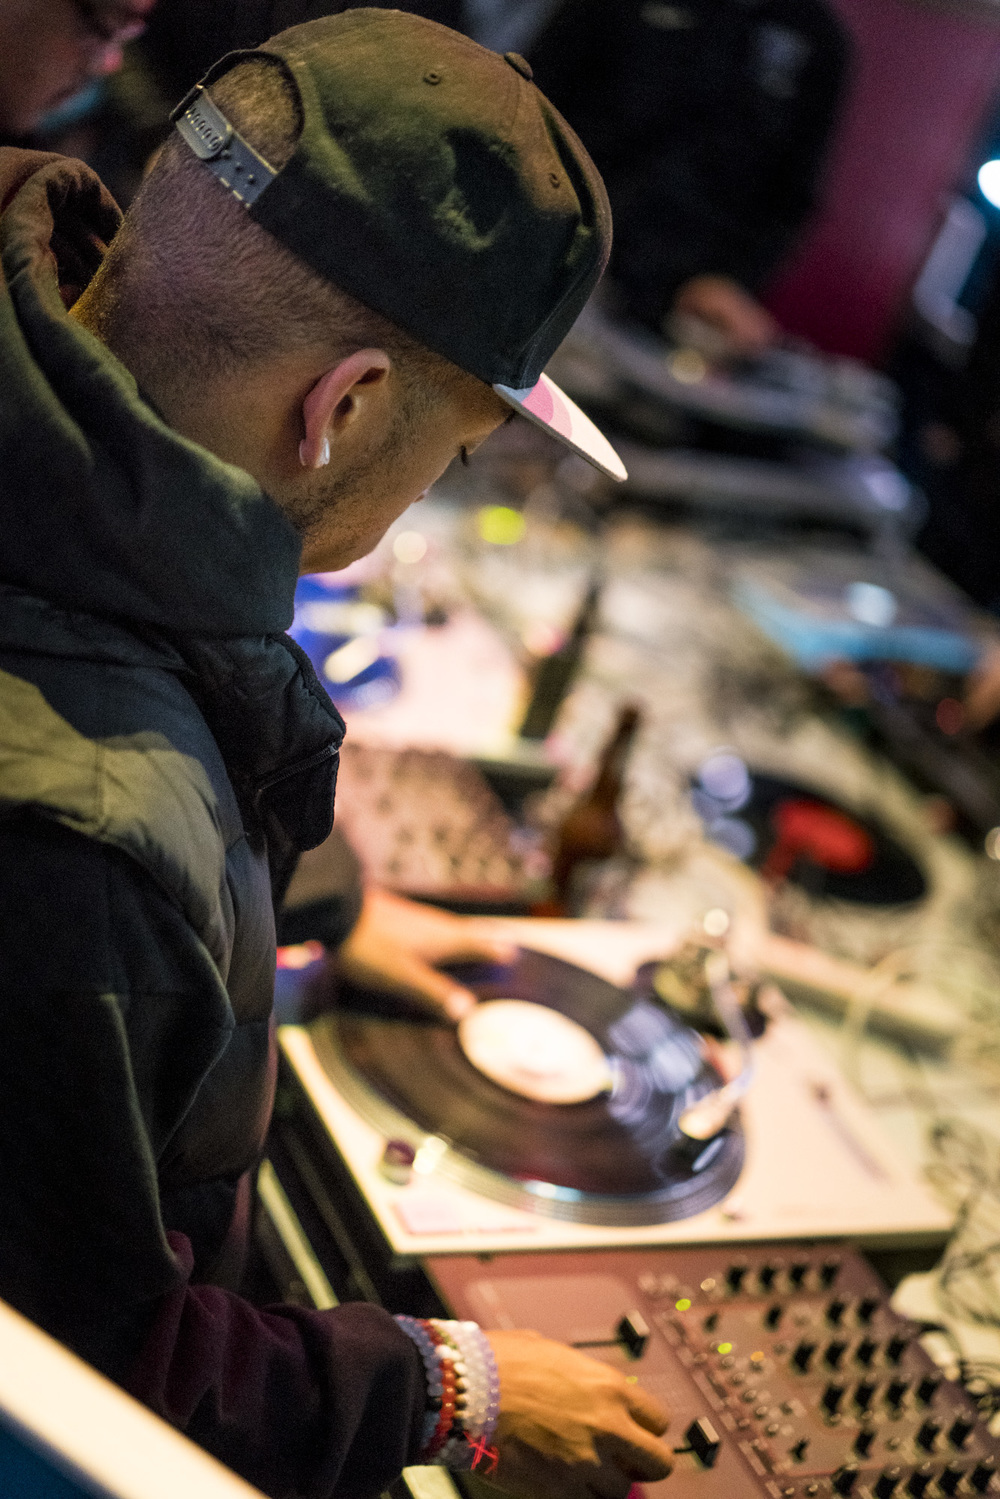 2016_03_03_Skratch Lounge_0021_Export.jpg